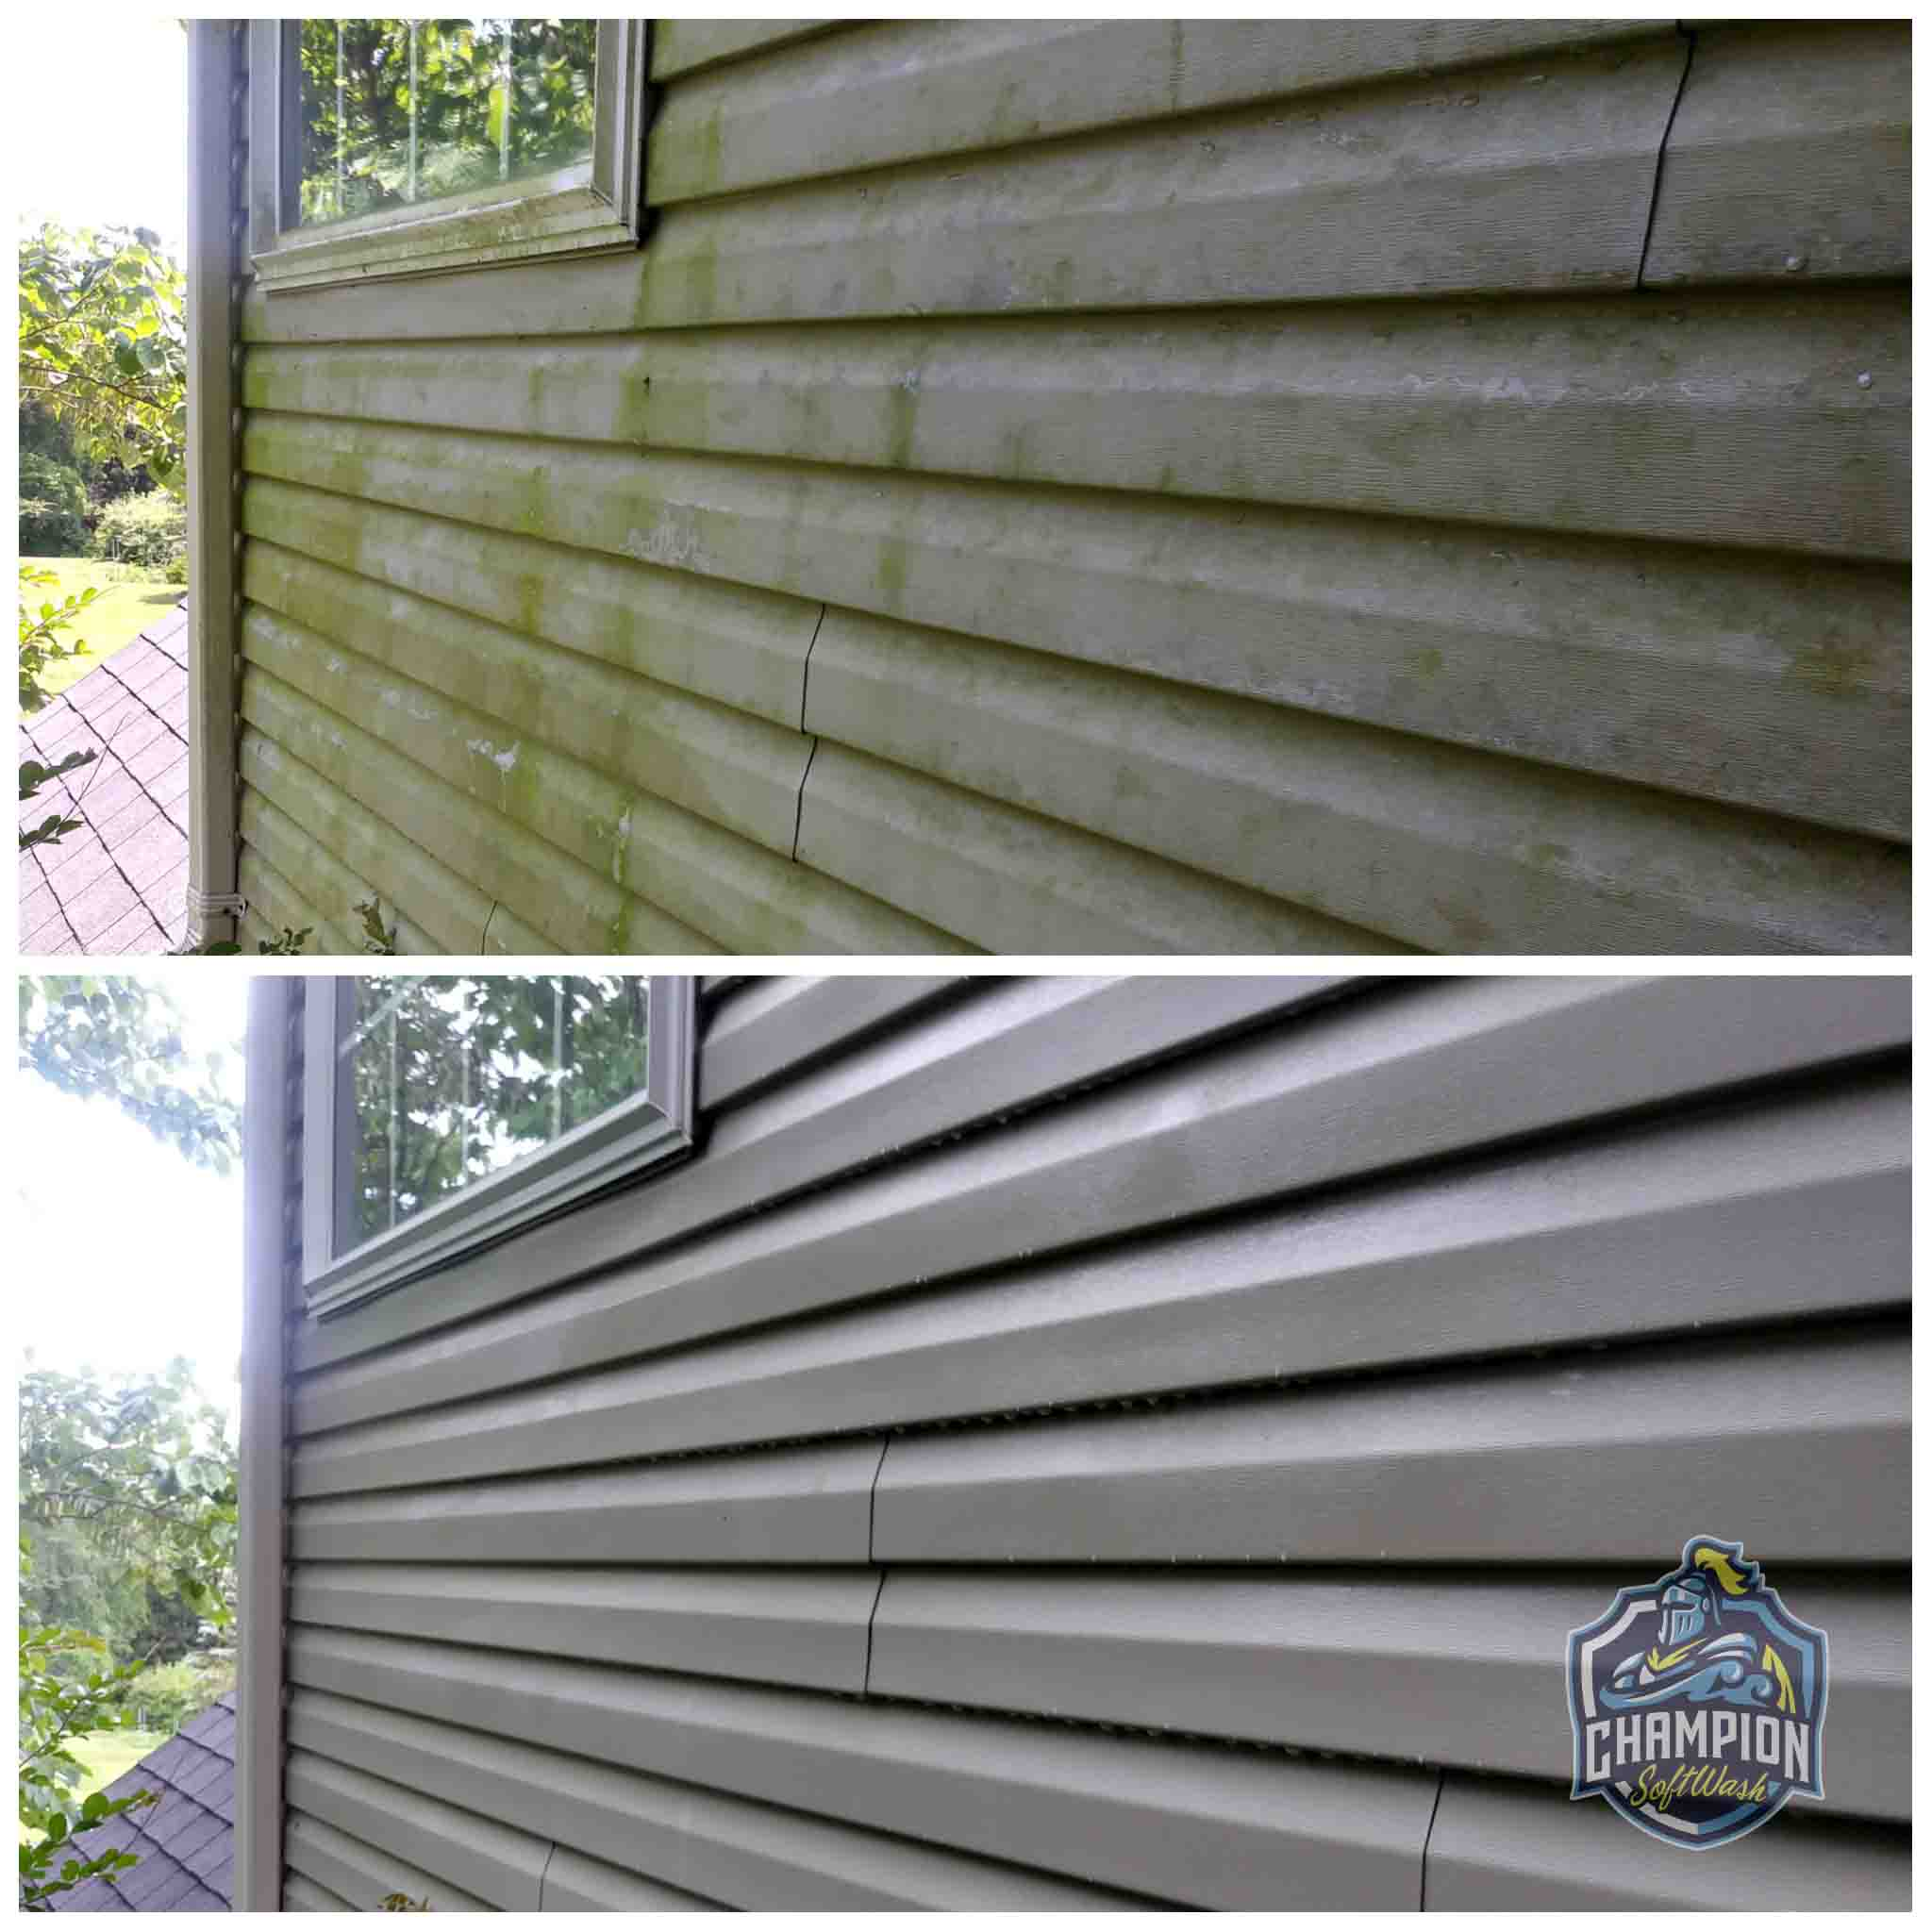 Vinyl siding cleaning, vinyl siding soft washing, vinyl siding pressure wash, house wash, algae removal